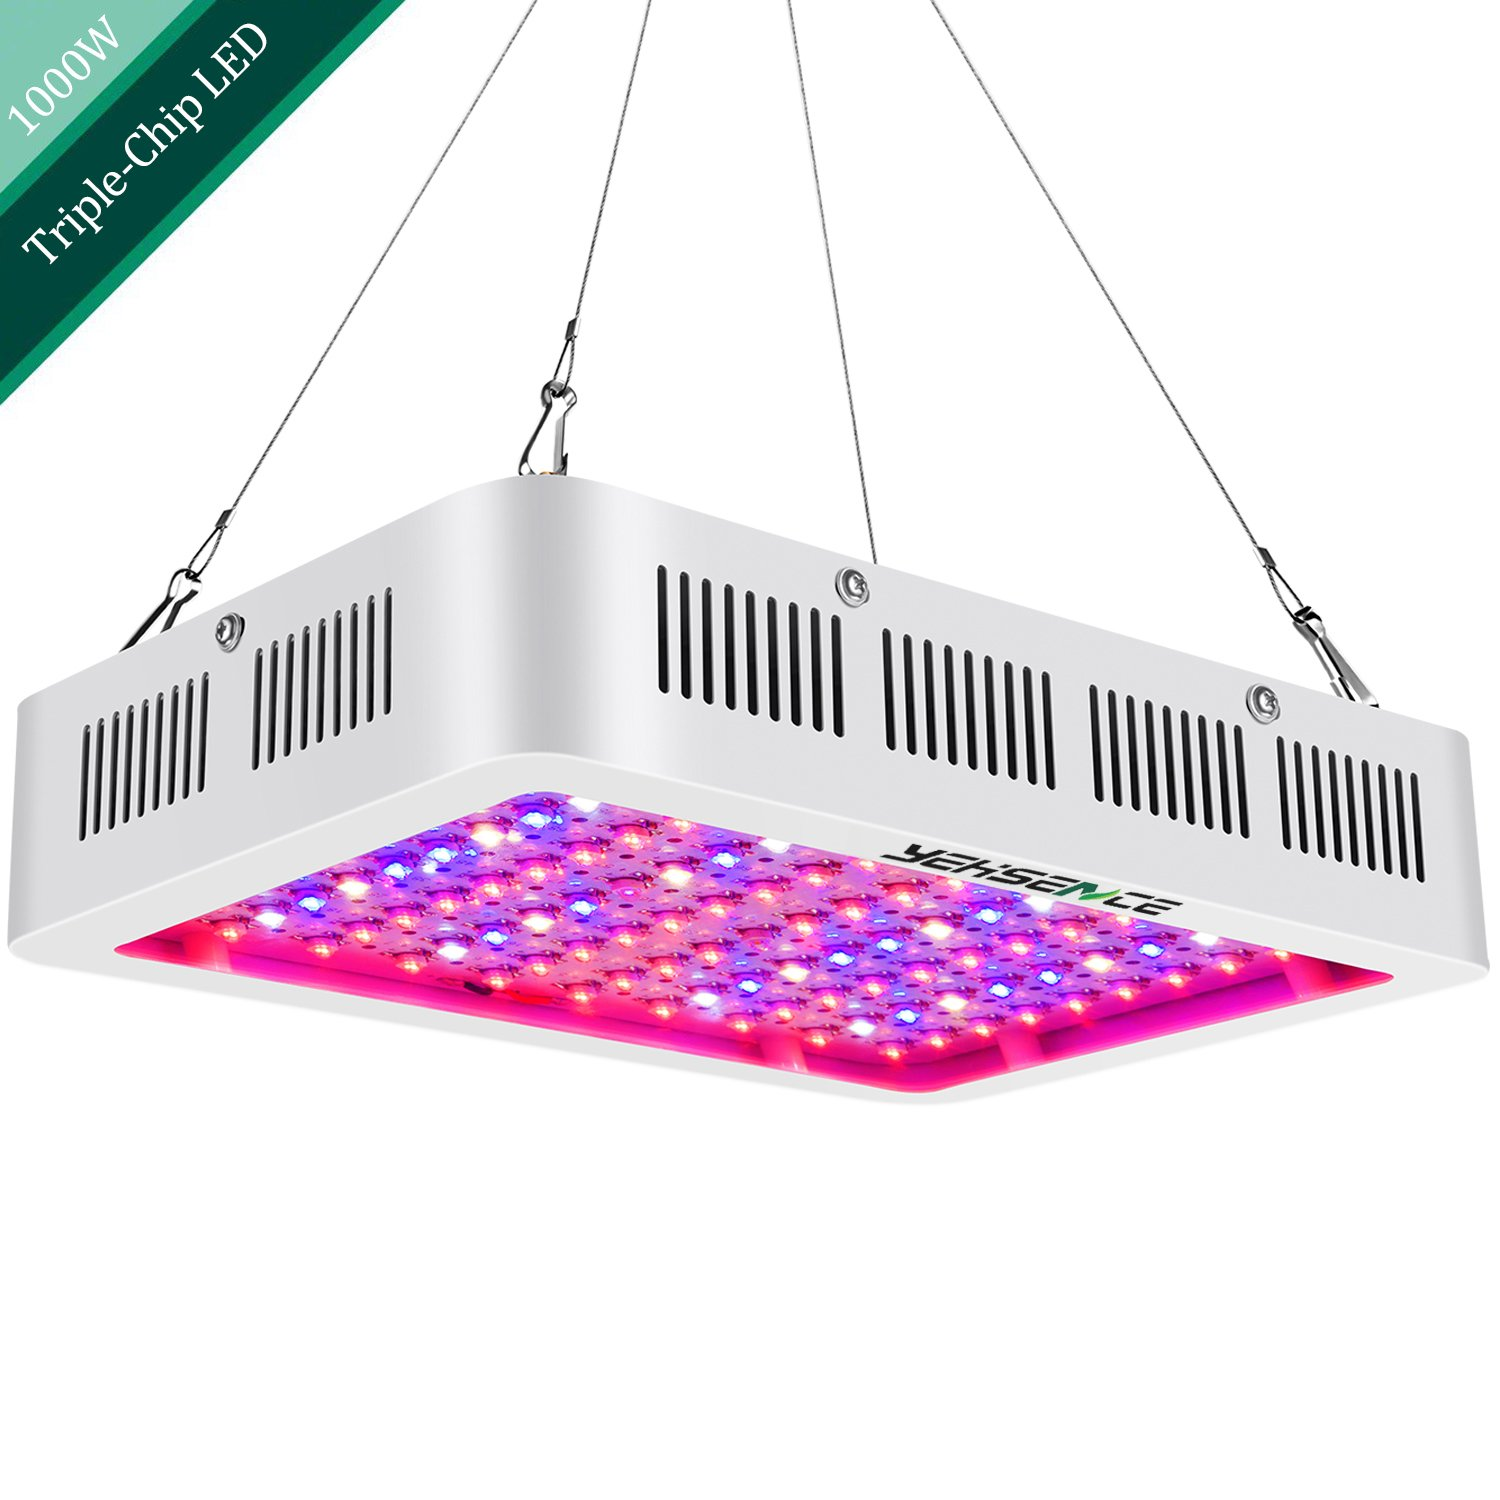 1000W LED Grow Light Full Spectrum,Yehsence (15W LED) 3 Chips LED Growing Light Fixtures with UV&IR for Indoor Plants Veg and Flower/Replace HPS Grow Light Fixture